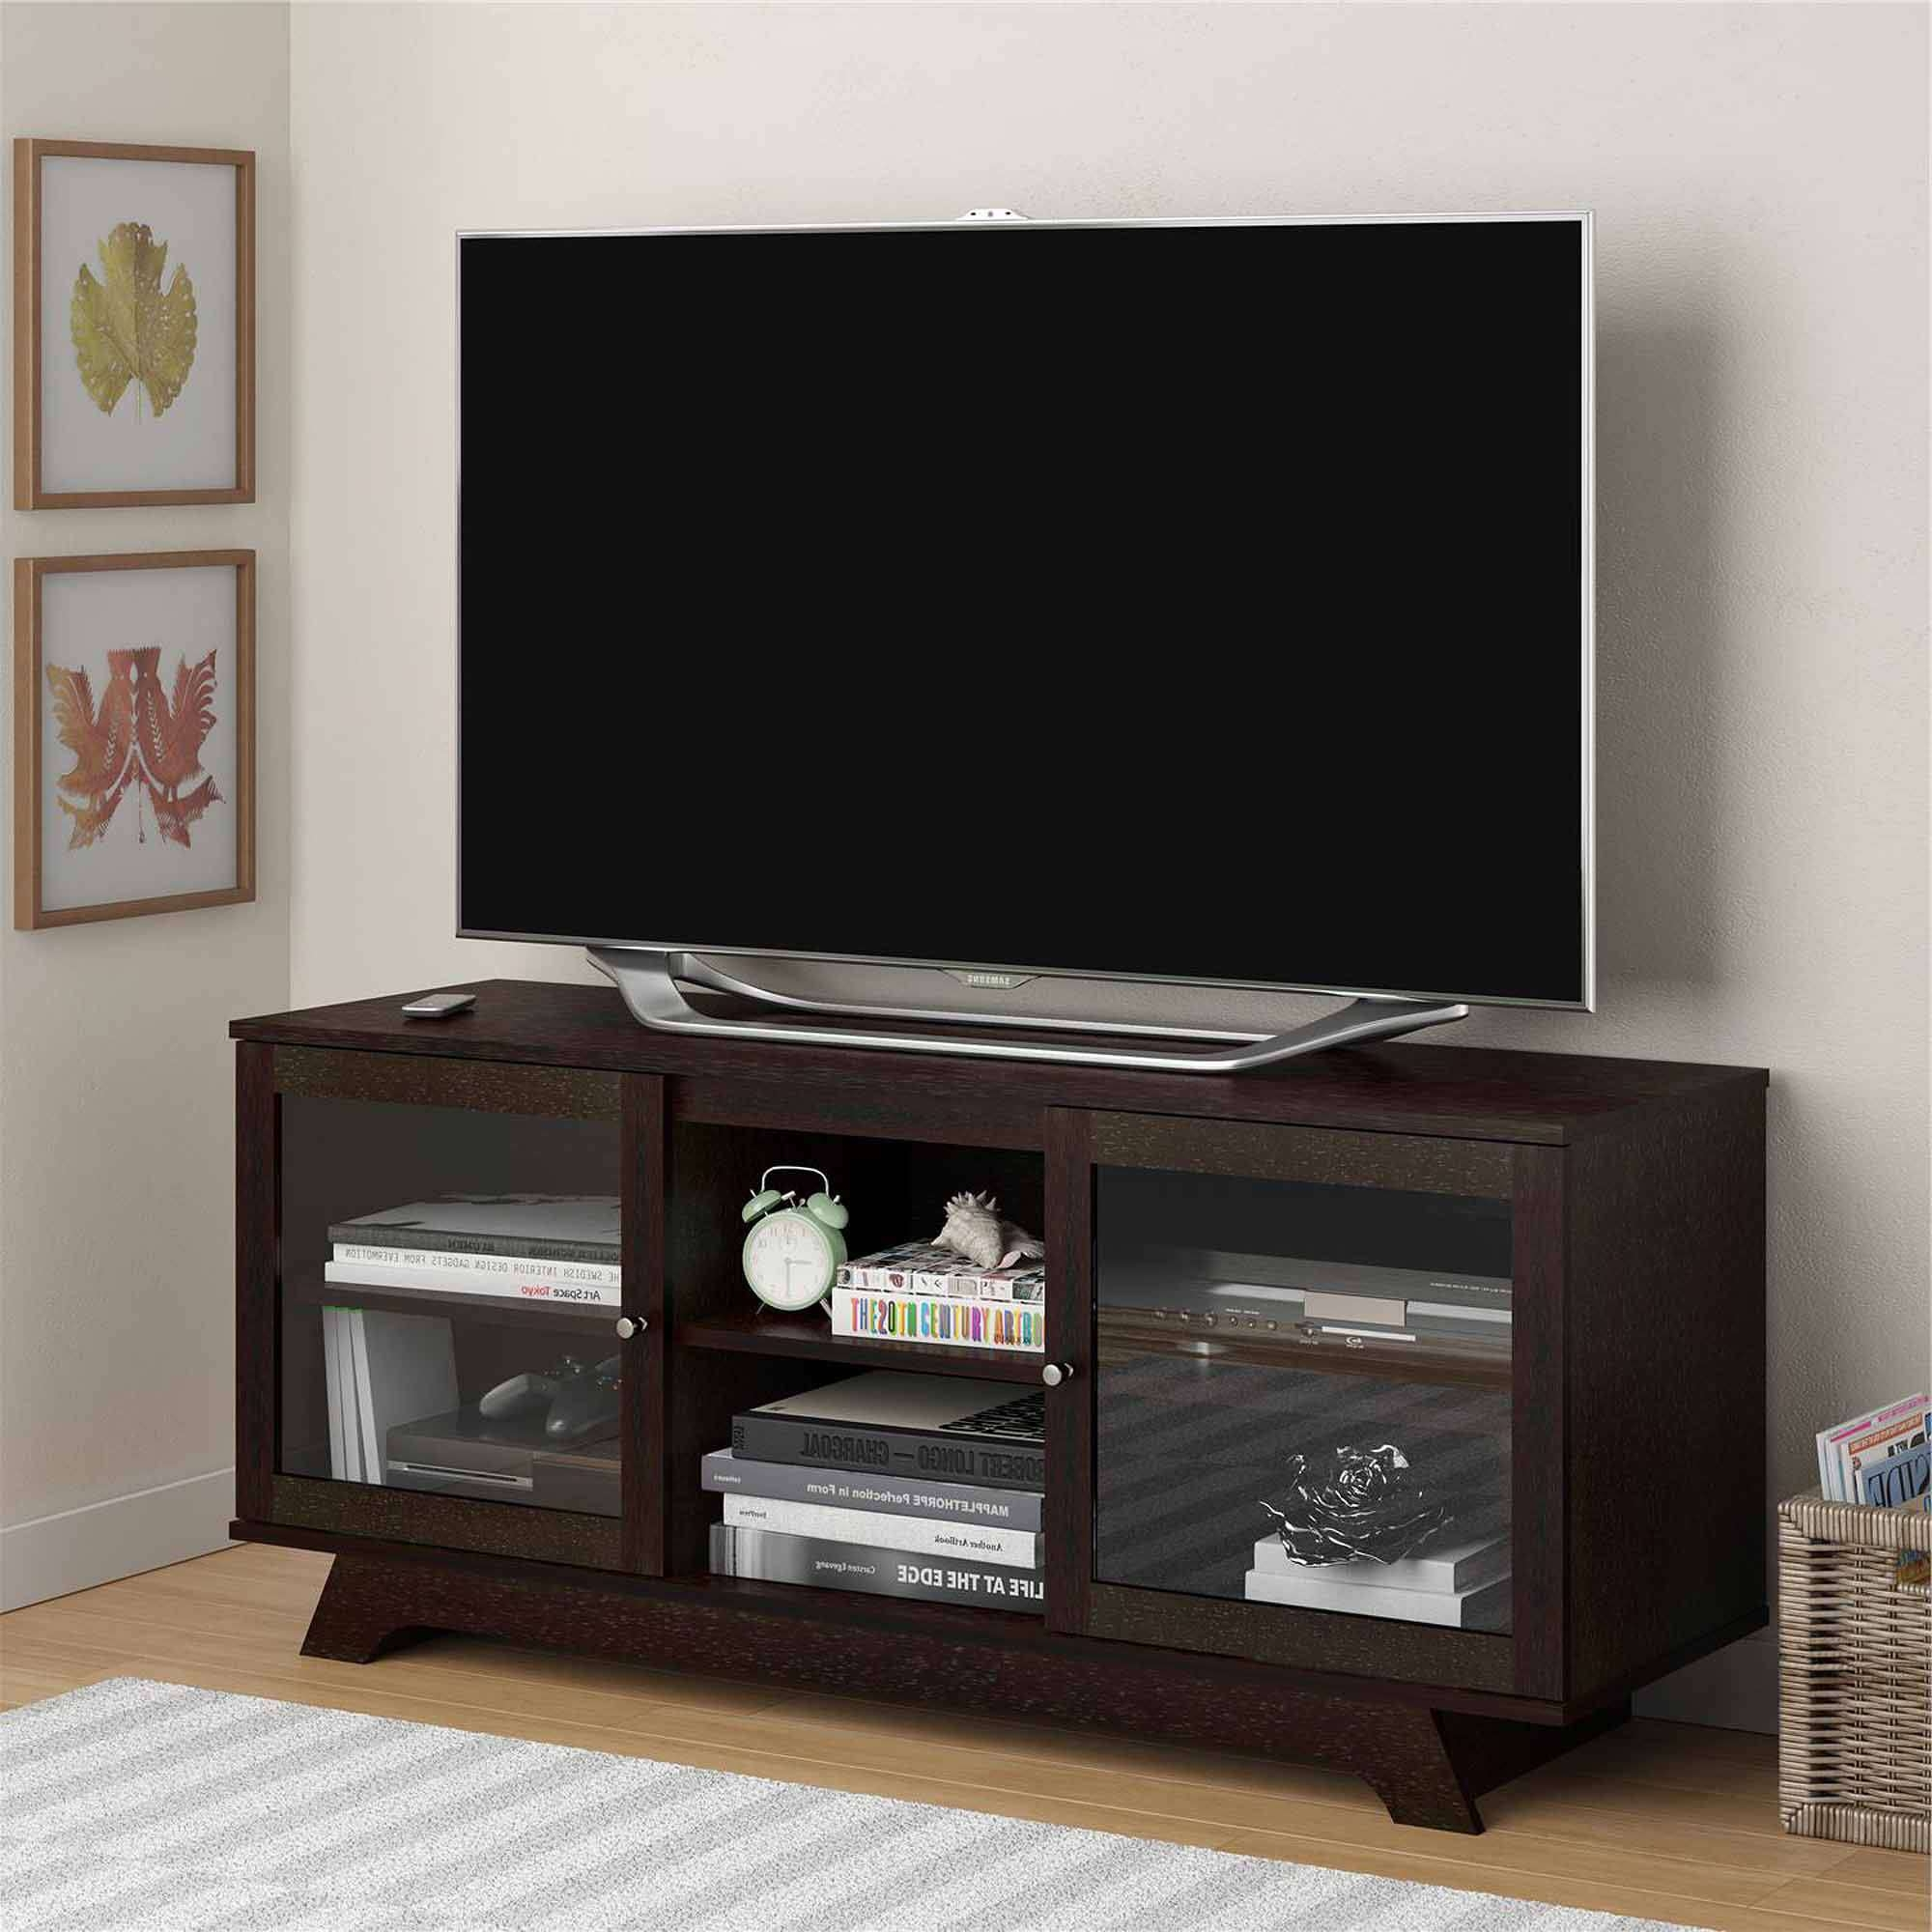 Tv Stands & Entertainment Centers – Walmart With Regard To Wooden Tv Stands For 55 Inch Flat Screen (View 11 of 15)